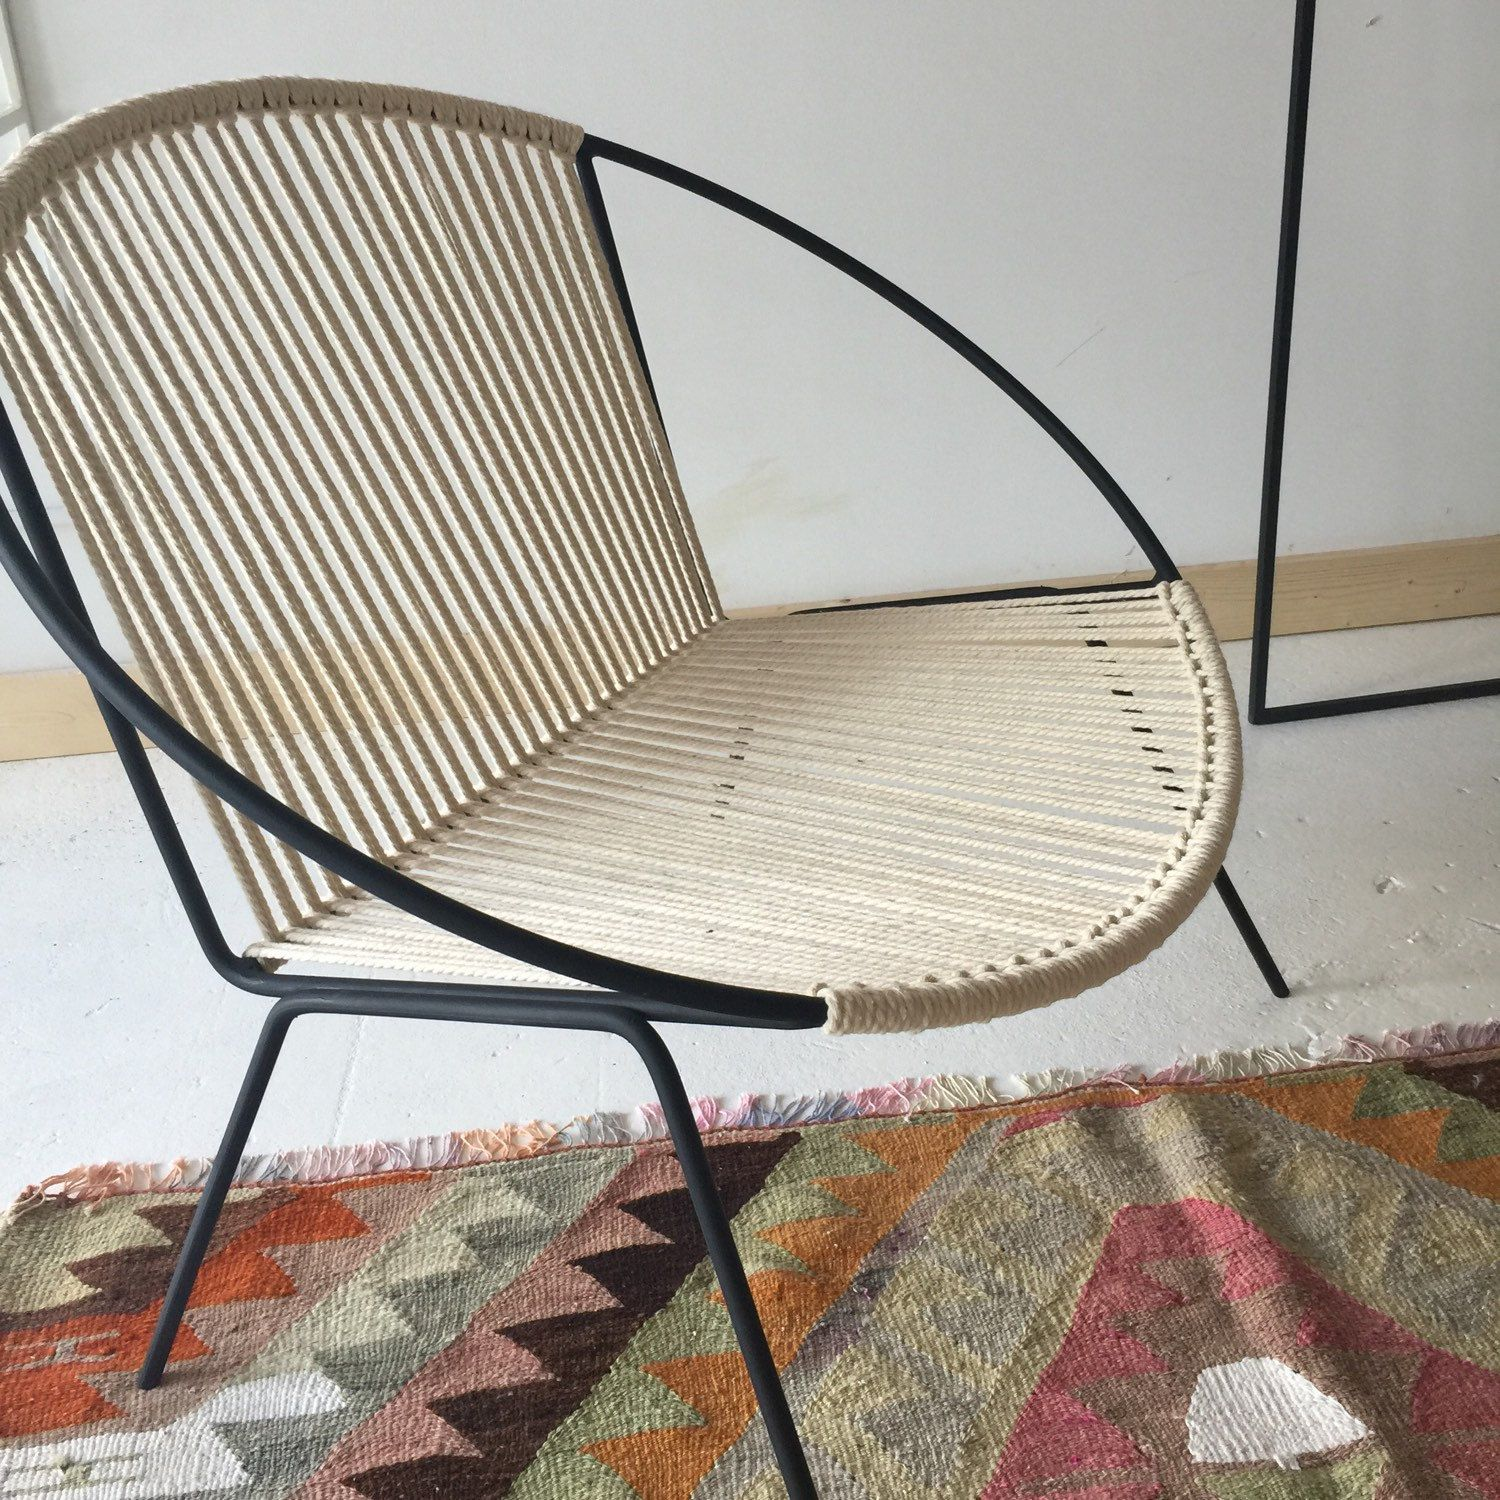 Welded Steel Frame Woven Hoop Circle Chair by SonadoraInLove